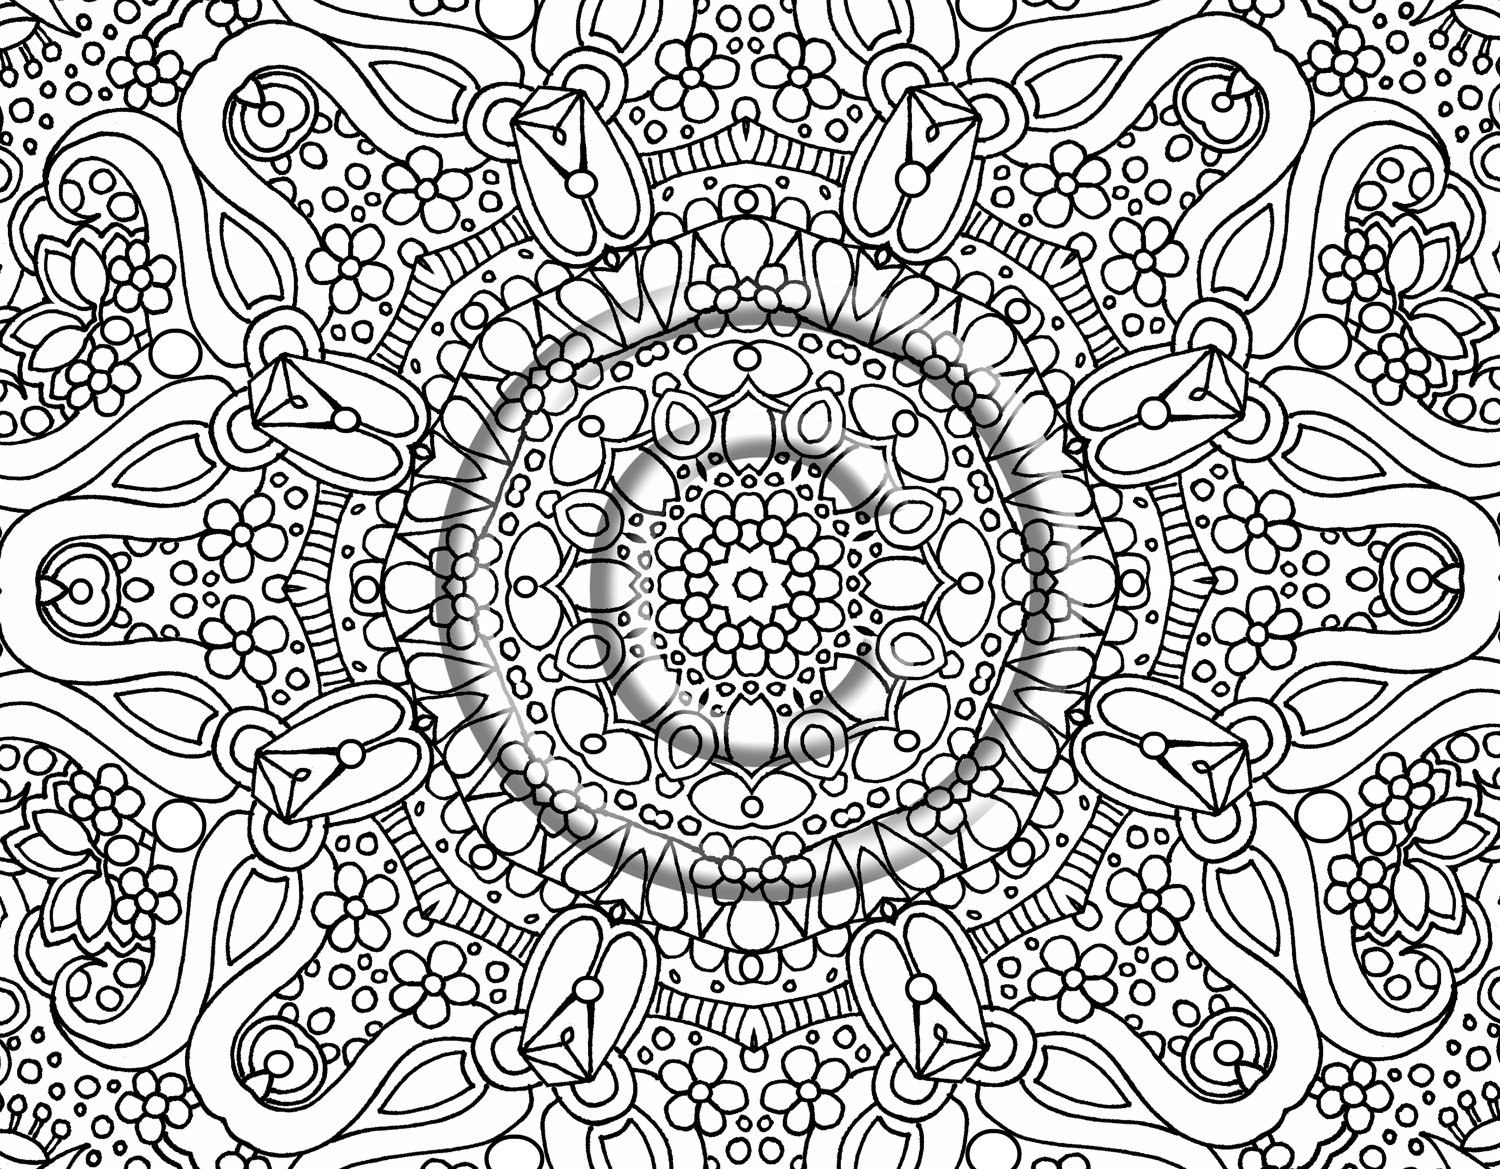 It is a picture of Printable Coloring Pages for Adults Abstract intended for cool